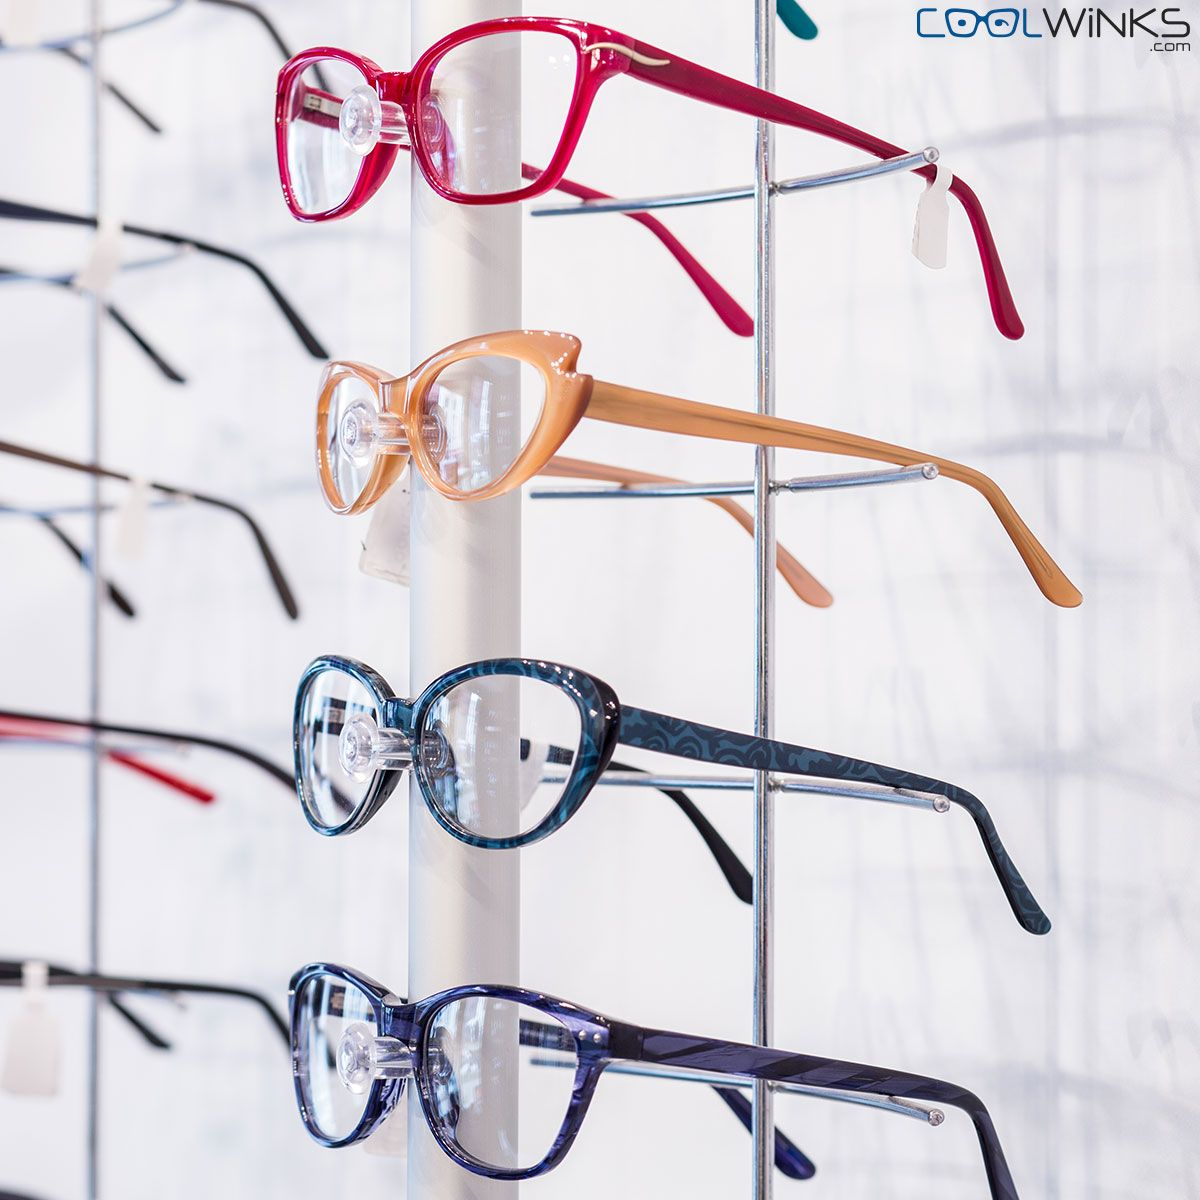 10bf34f800 Just head to Coolwinks   start buying Premium Quality Eyeglass Frames  starting   Rs.3 only! Limited Period Offer. Hurry! Buy Now.